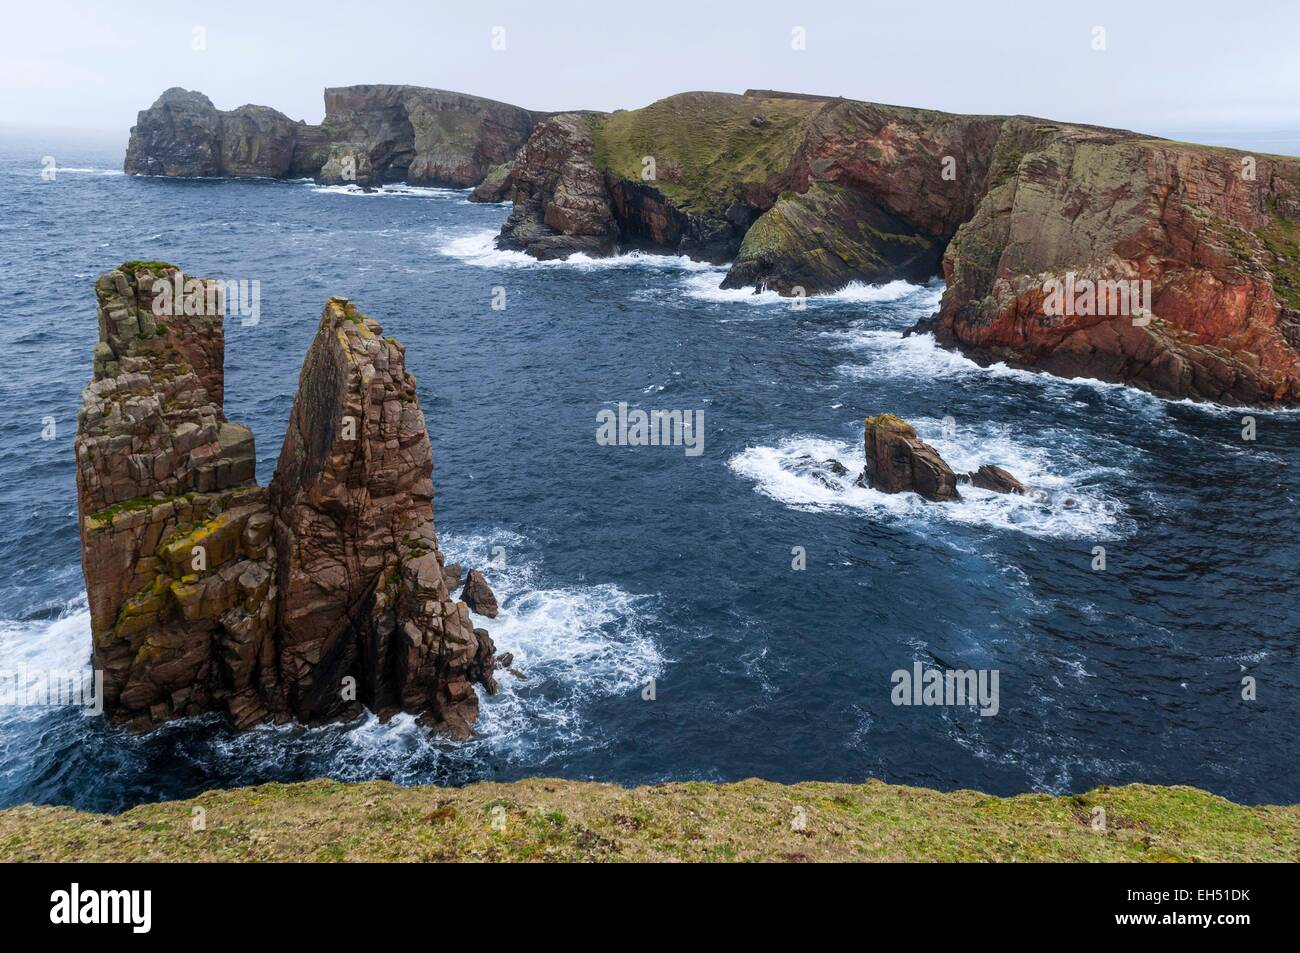 Ireland, Ulster, Donegal County, island of Tory, cliffs on east side island - Stock Image